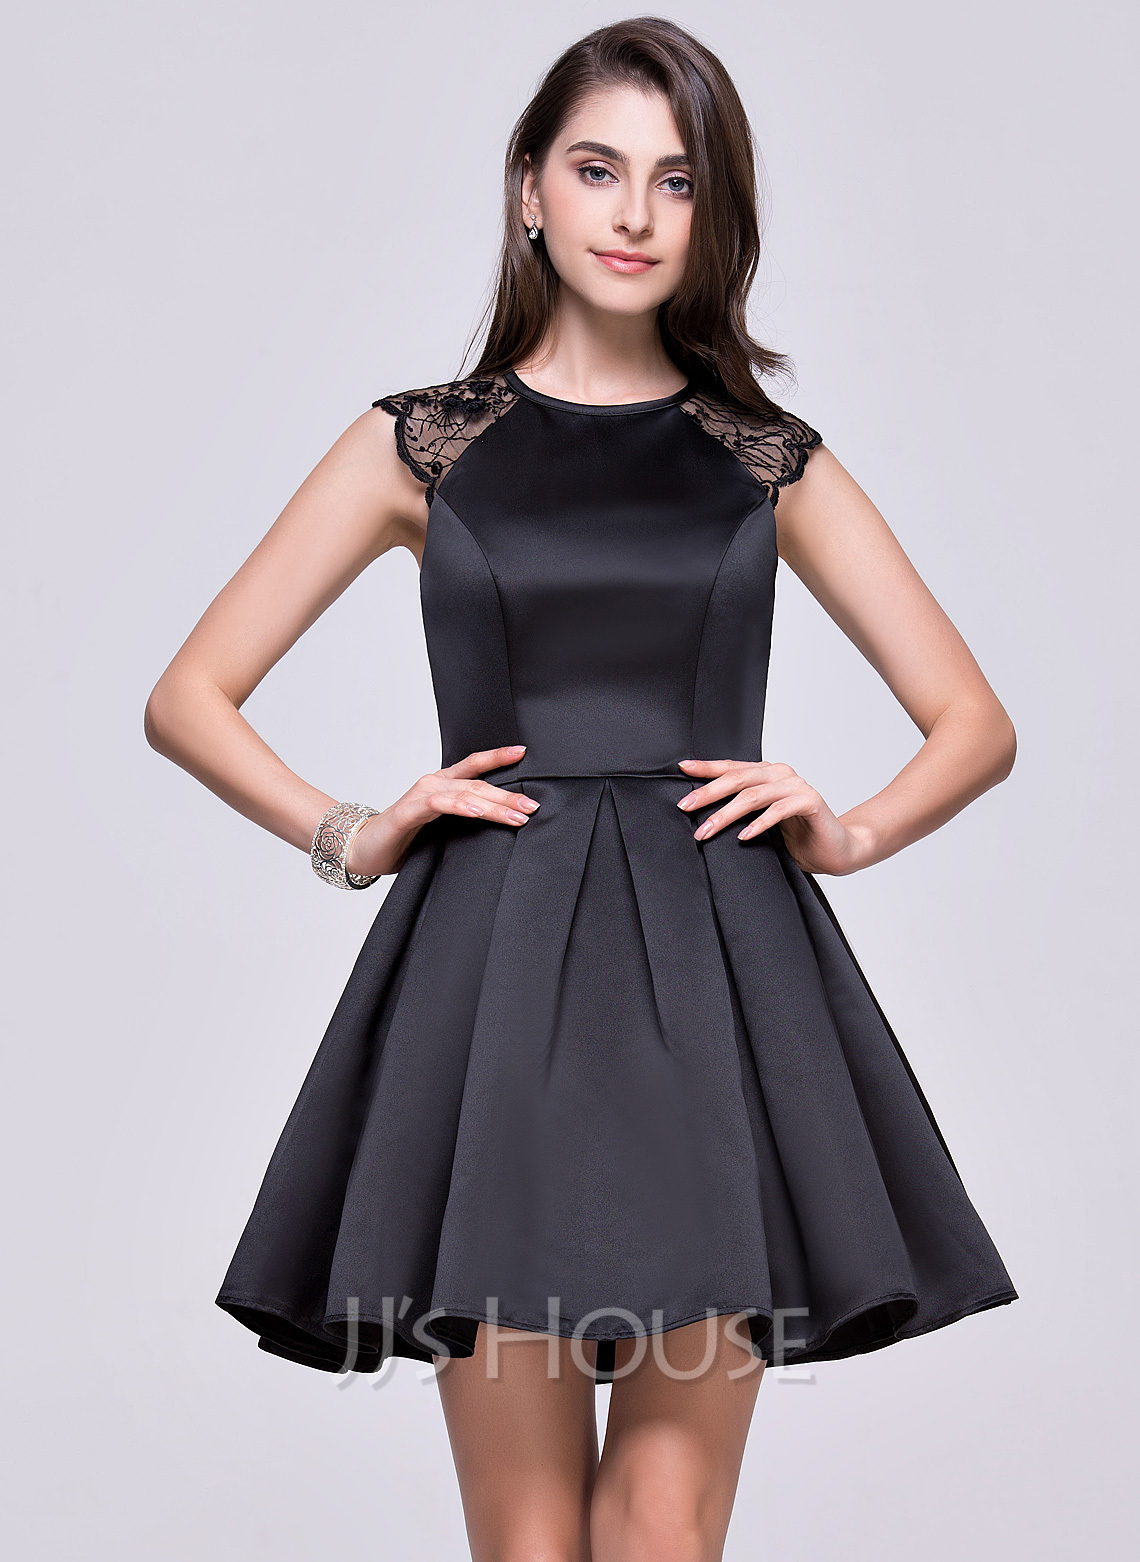 A-Line/Princess Scoop Neck Short/Mini Satin Homecoming Dress With Lace